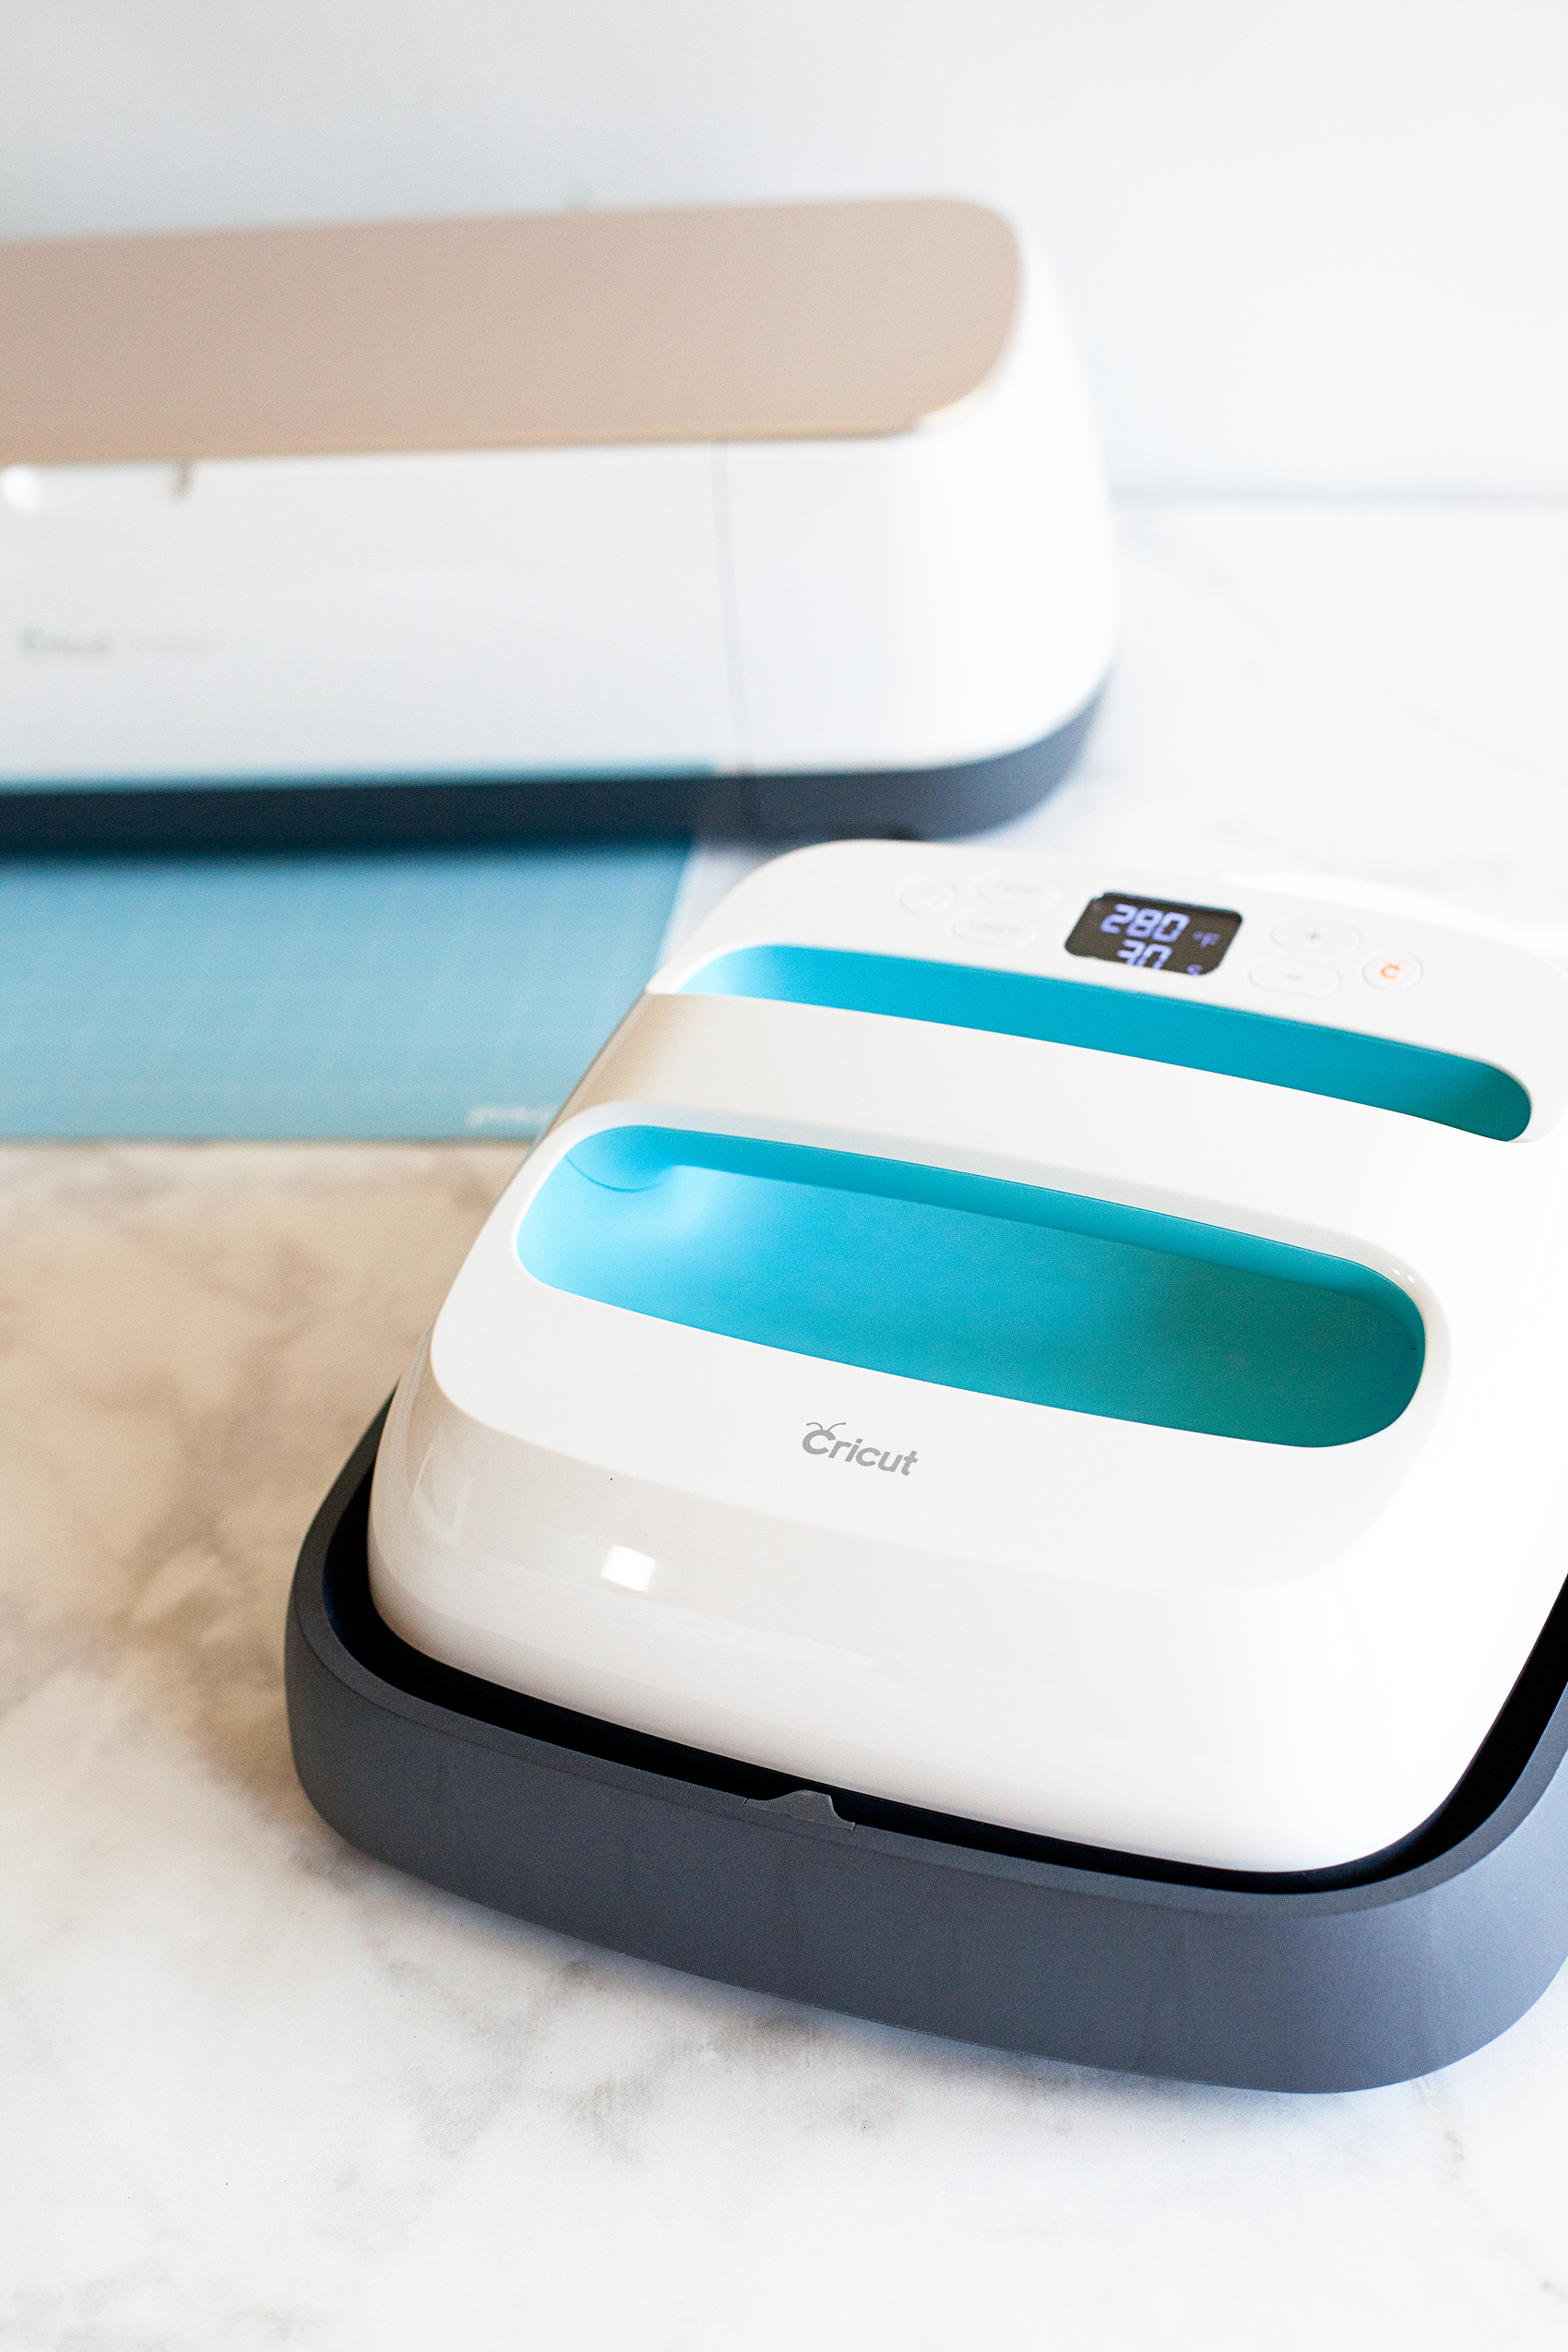 The NEW Cricut MAKER and the Cricut Easy Press